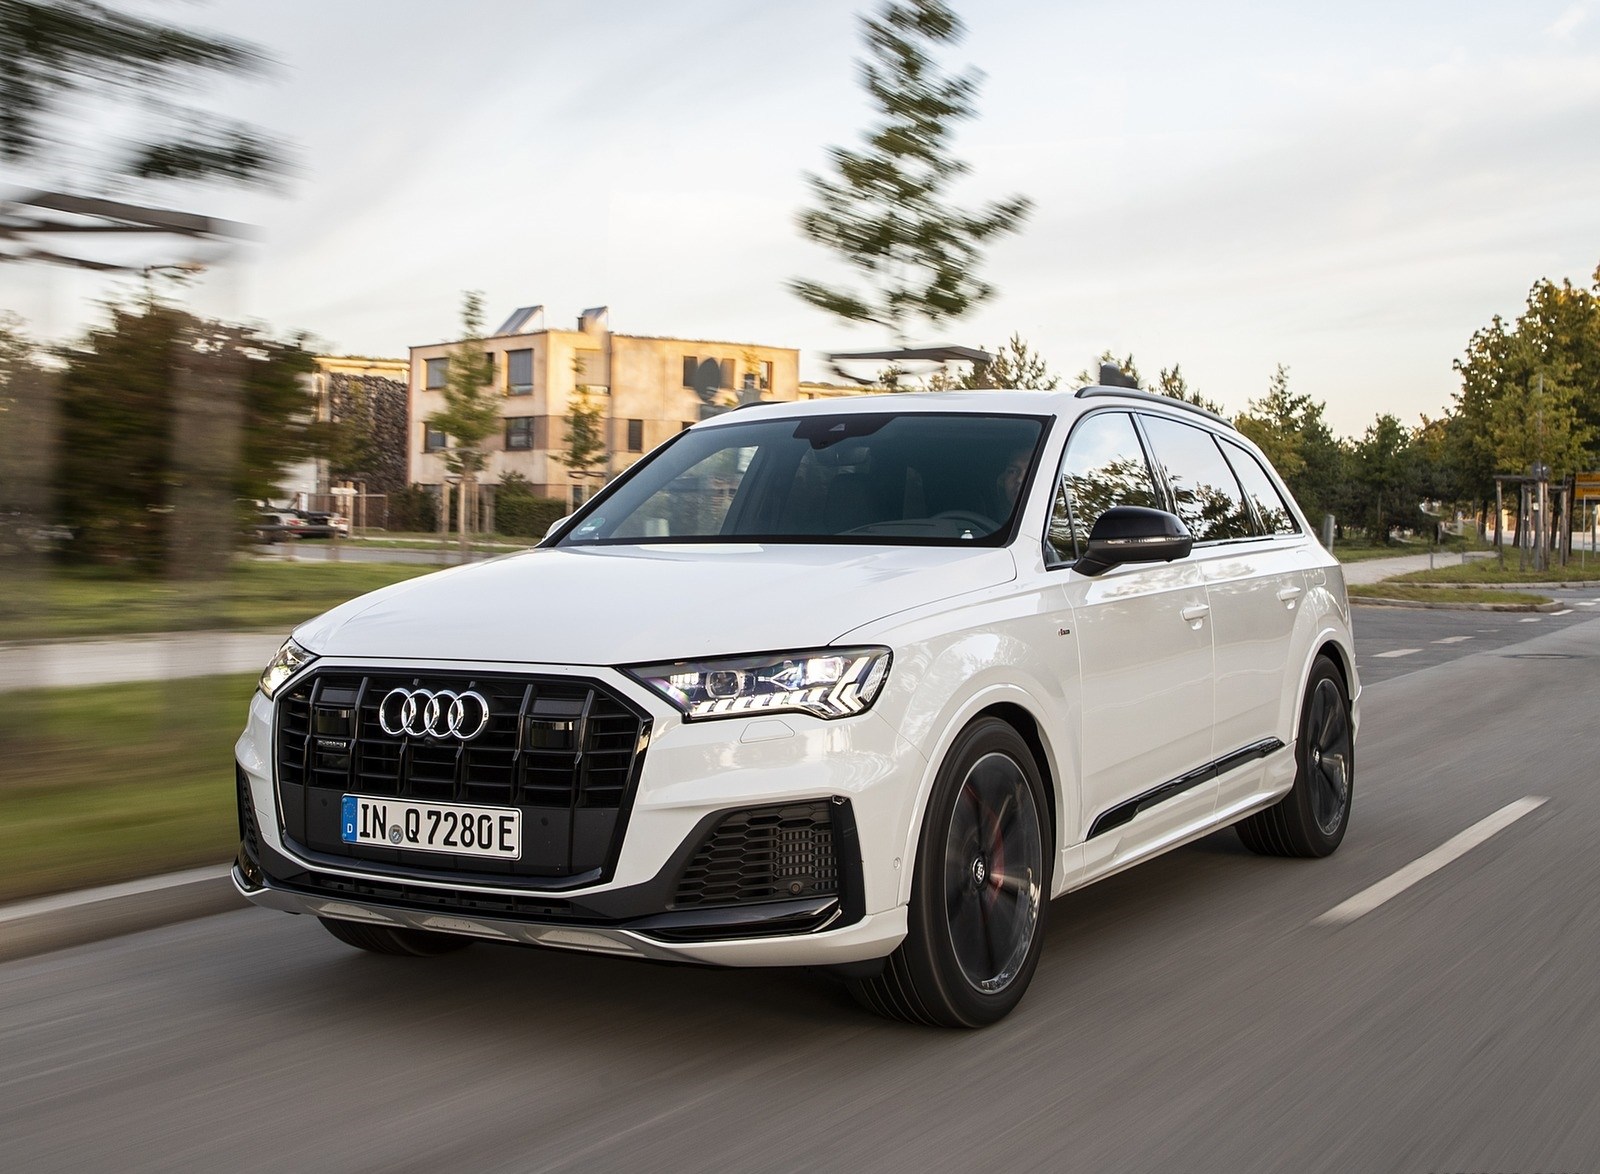 2020 Audi Q7 TFSI e quattro Plug-In Hybrid (Color: Glacier White) Front Three-Quarter Wallpapers (3)